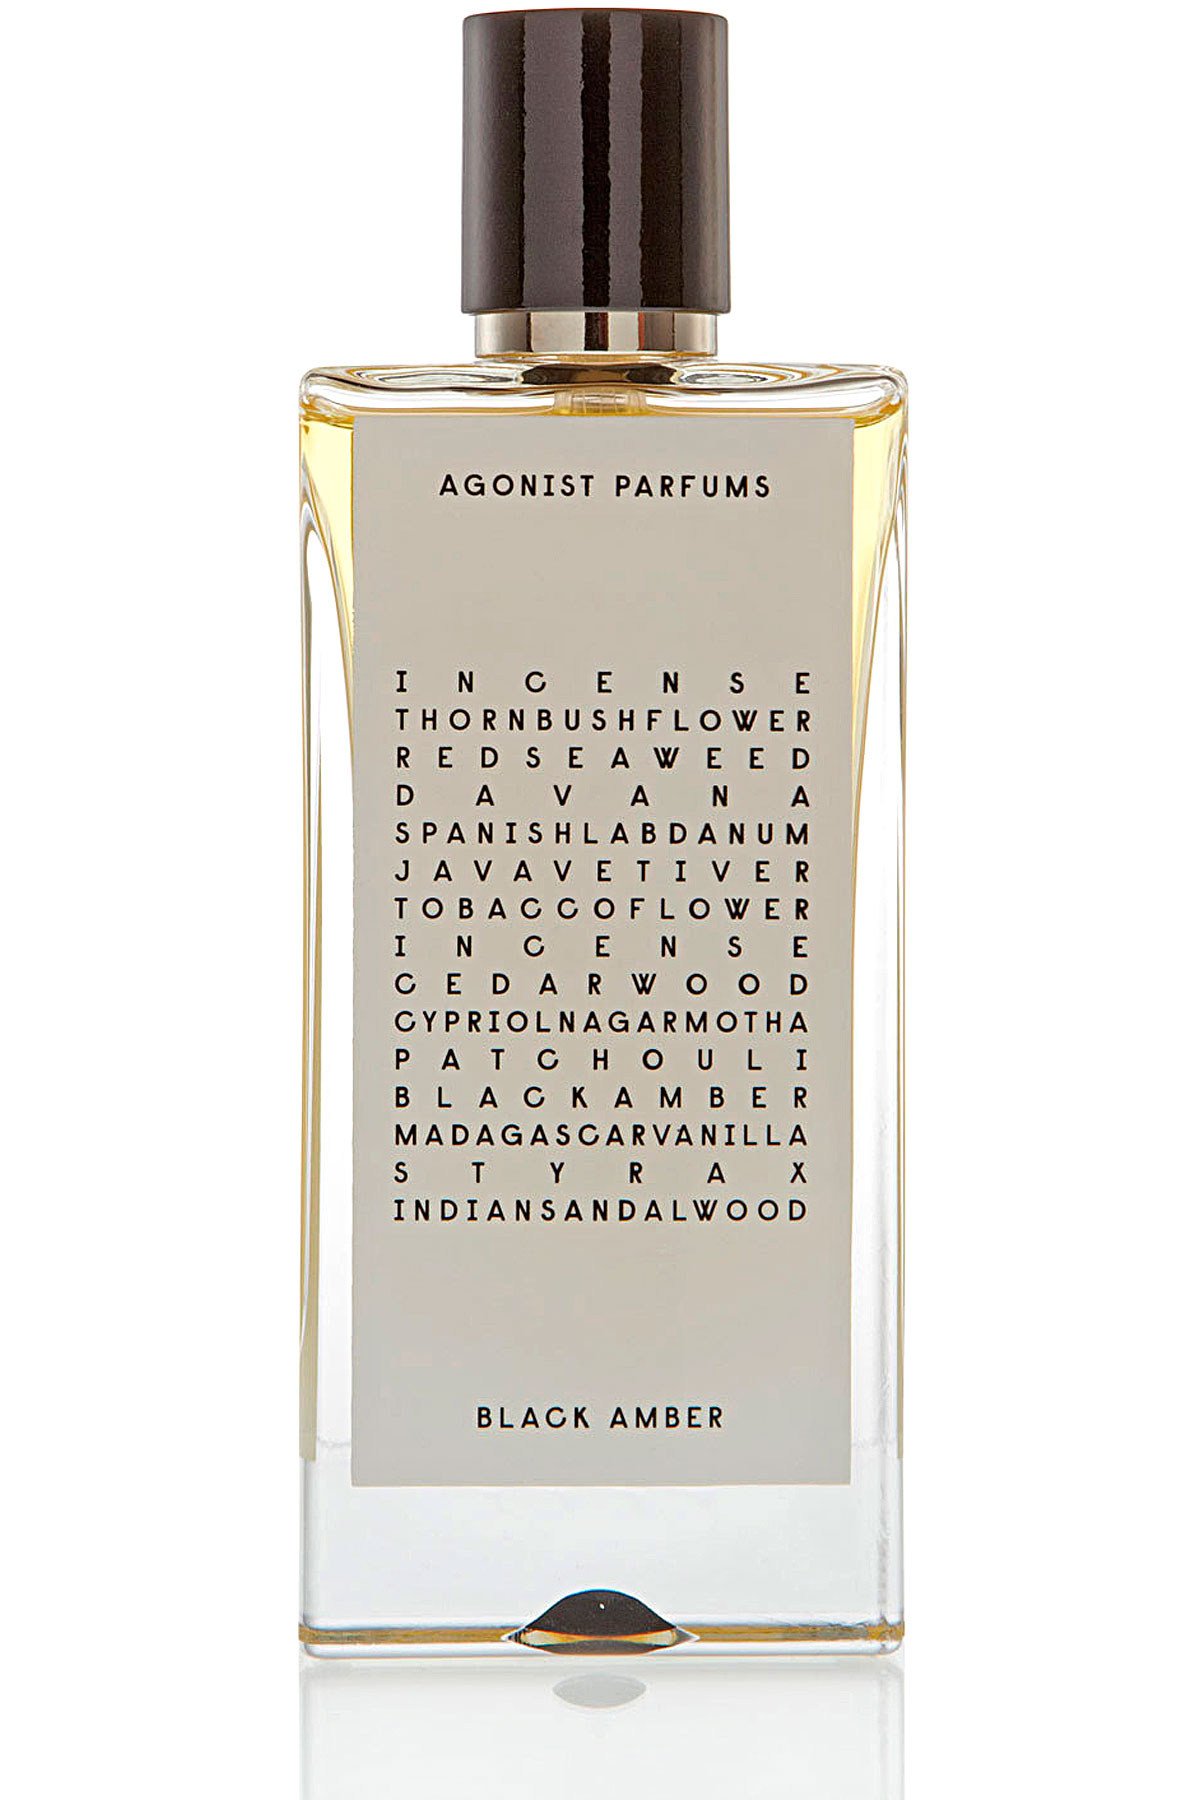 Agonist Fragrances for Men, Black Amber - Eau De Parfum - 50 Ml, 2019, 50 ml